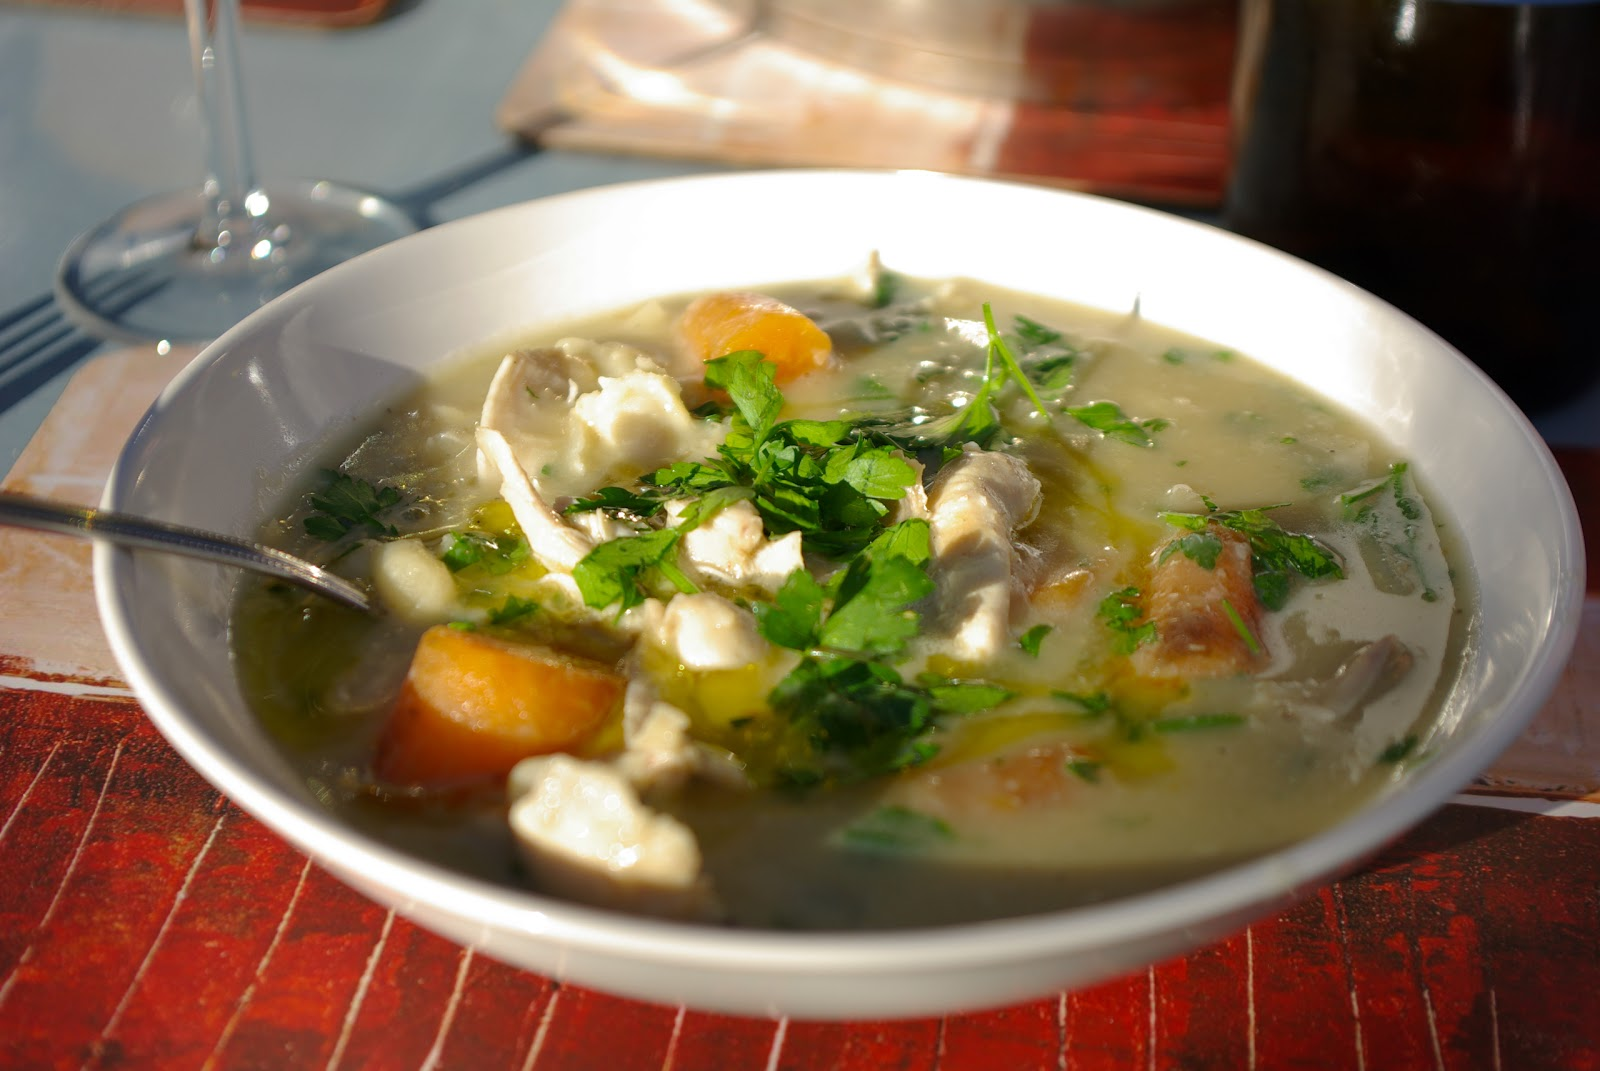 ... family food blog by Rachel Brady: Chicken stew with white beans